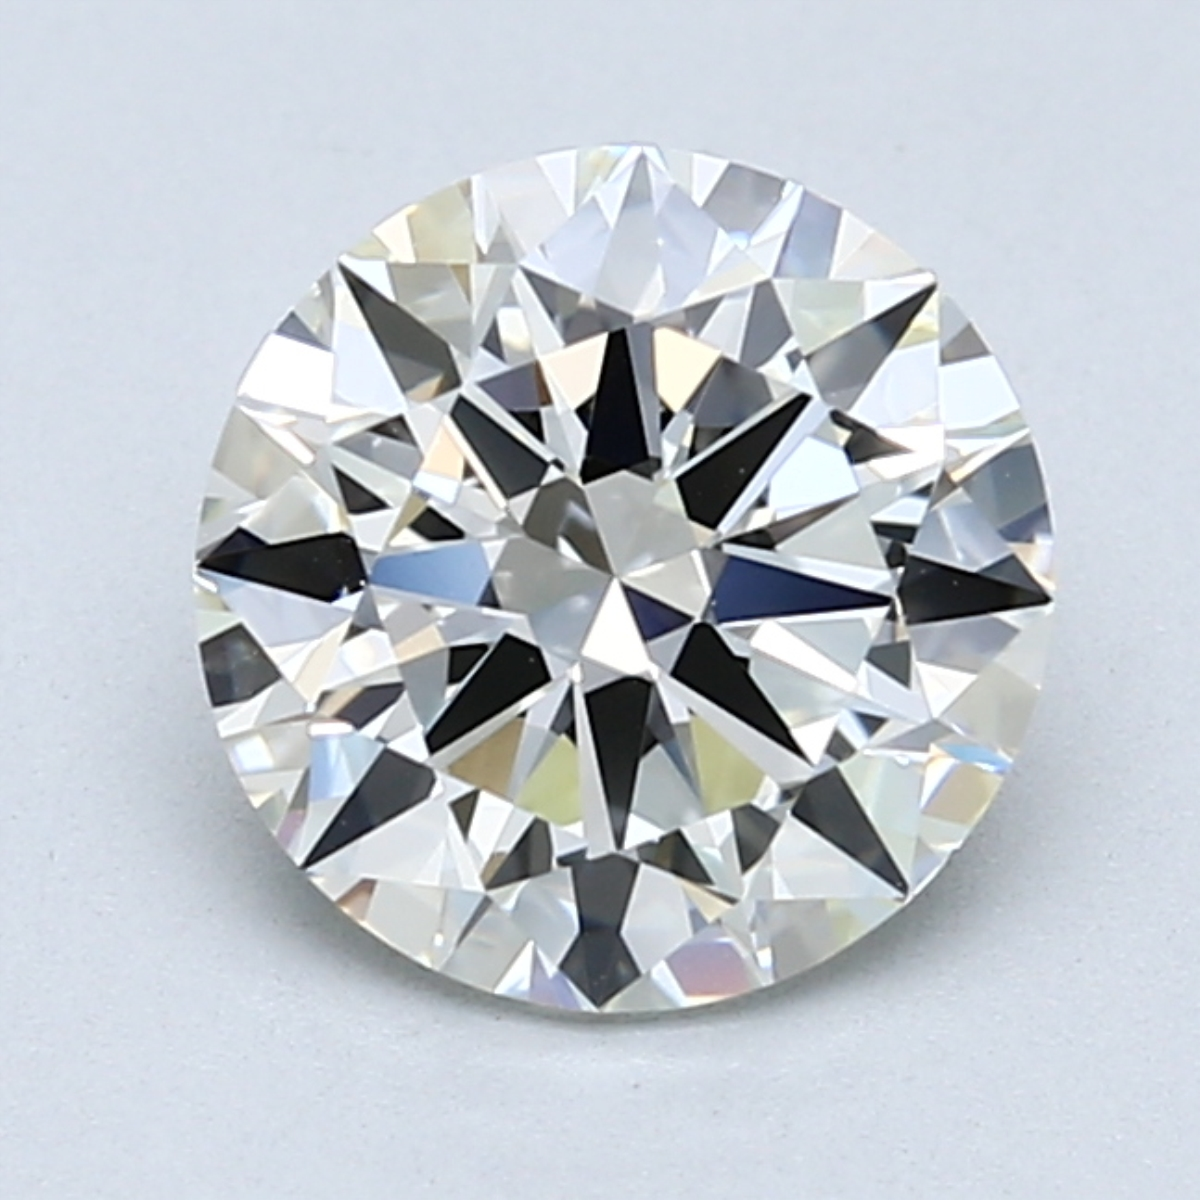 2 Carat I Color Diamond